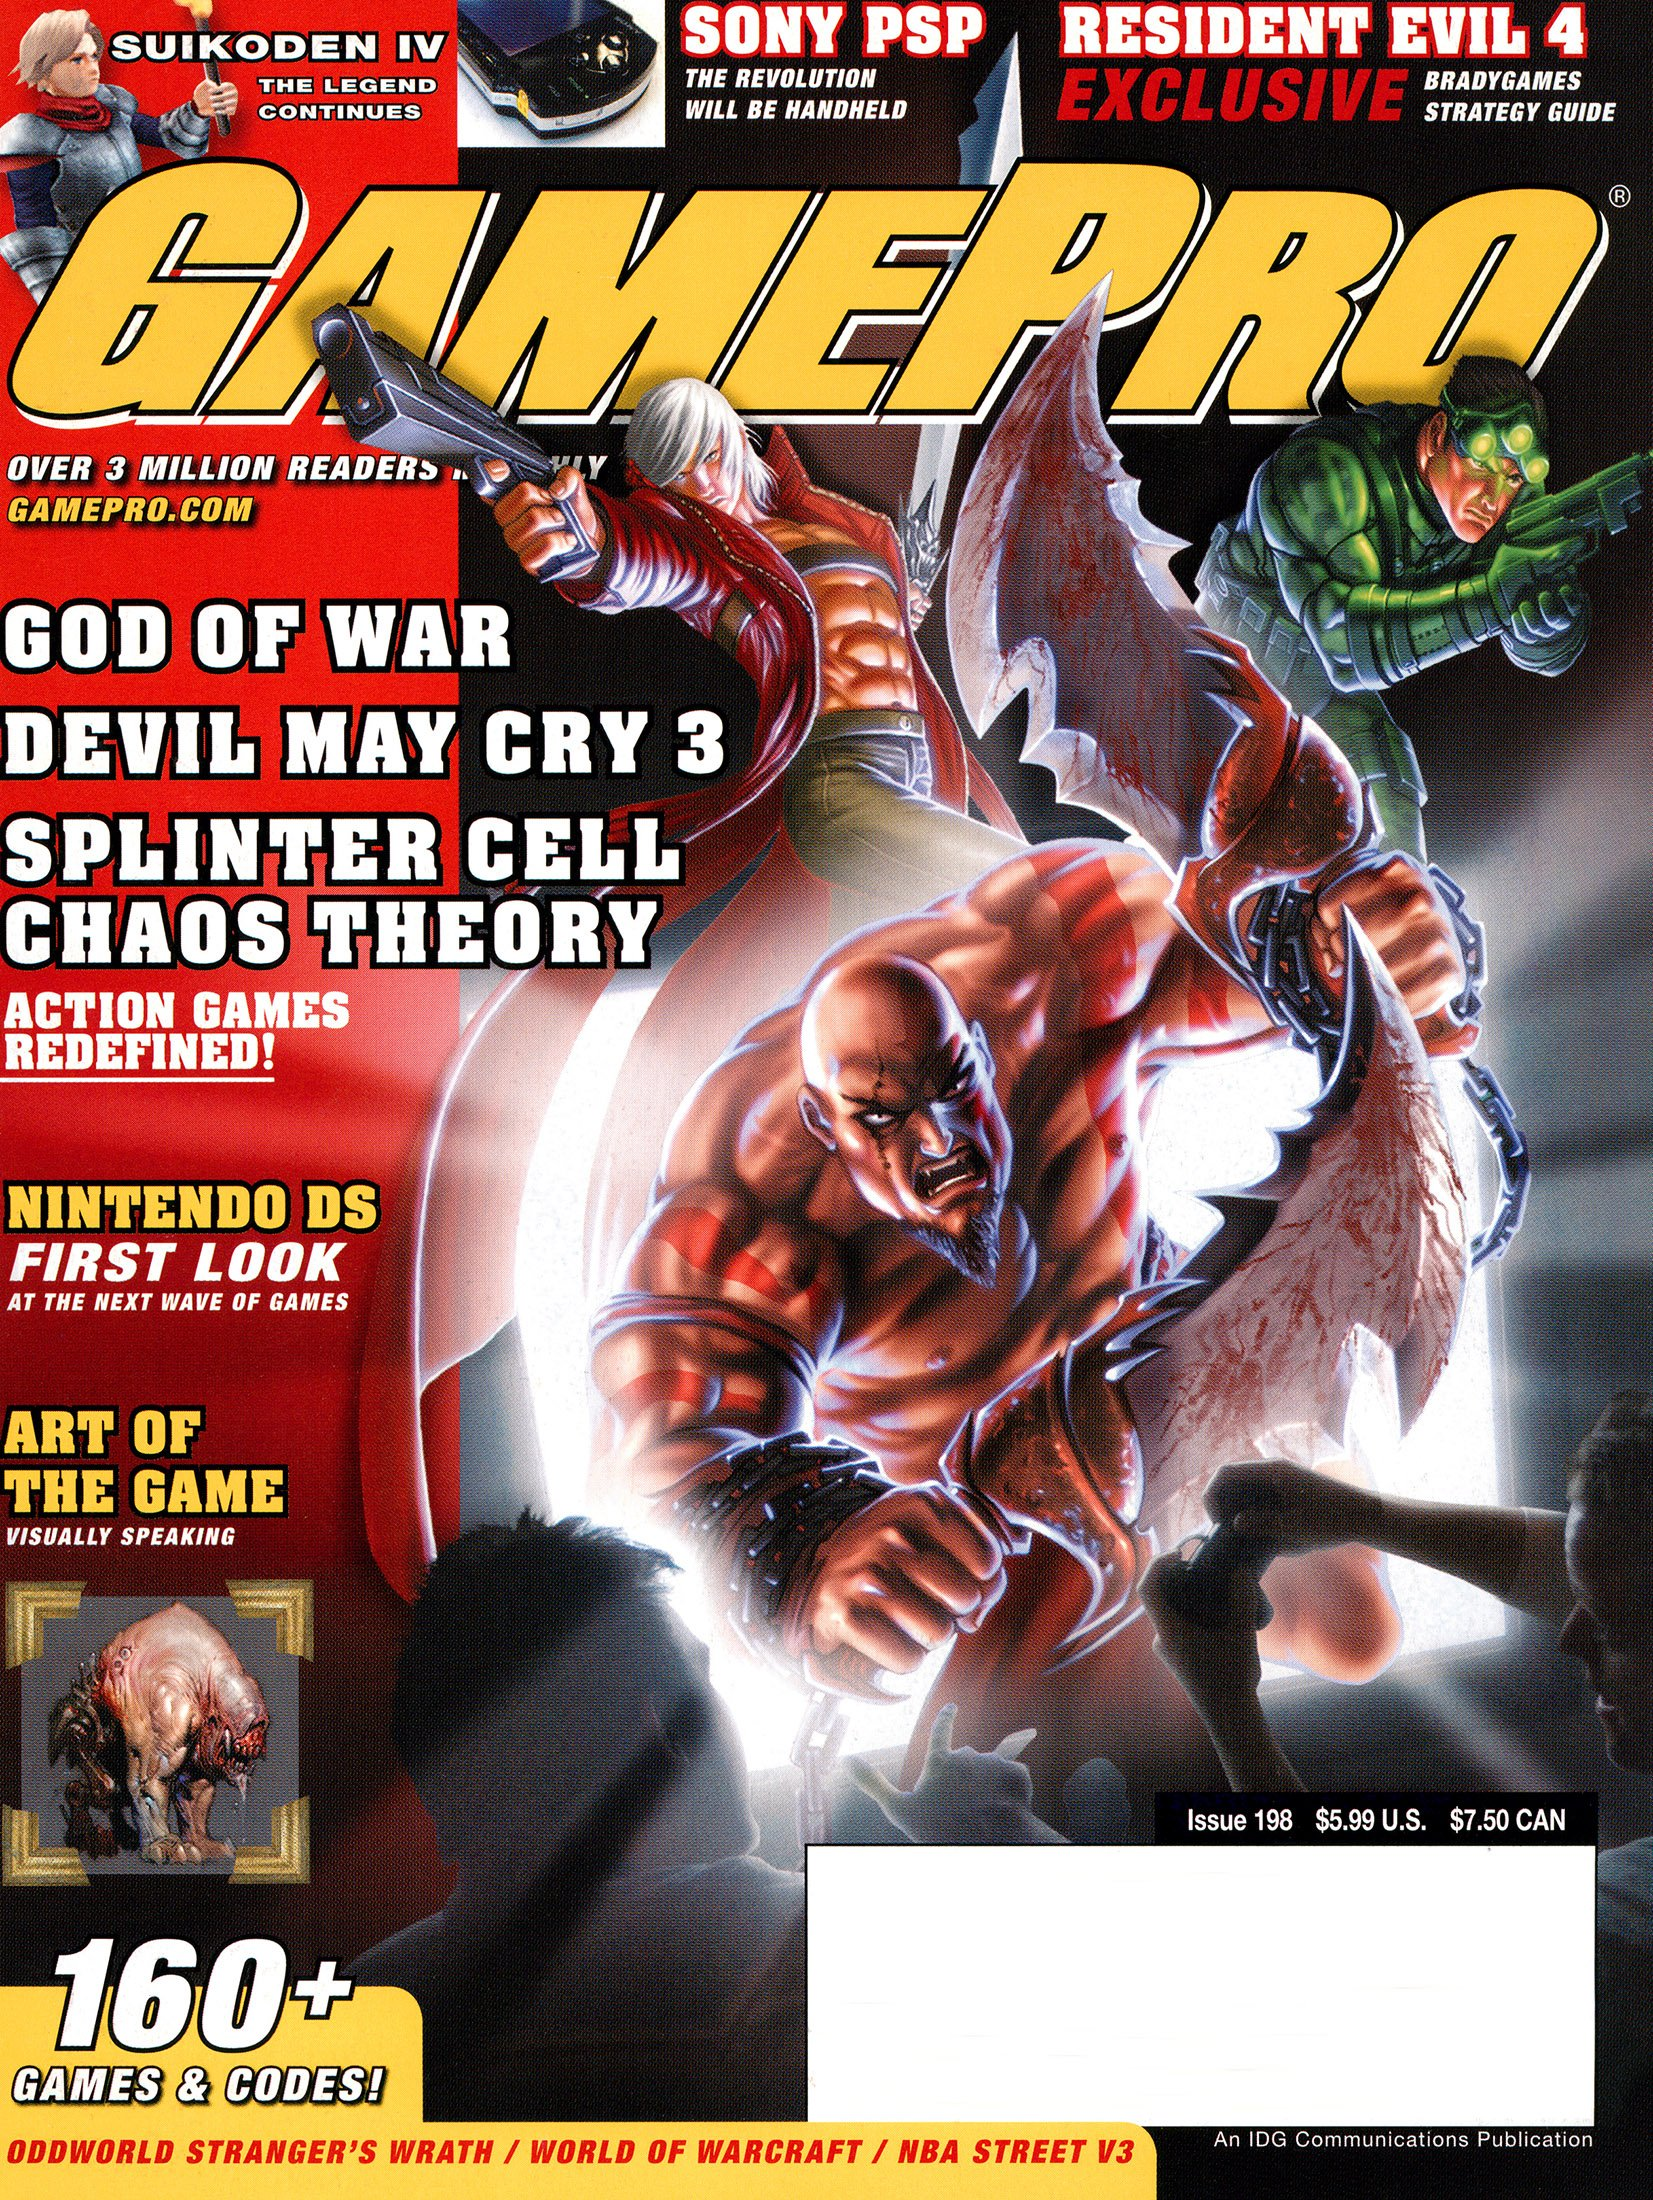 GamePro Issue 198 (March 2005)